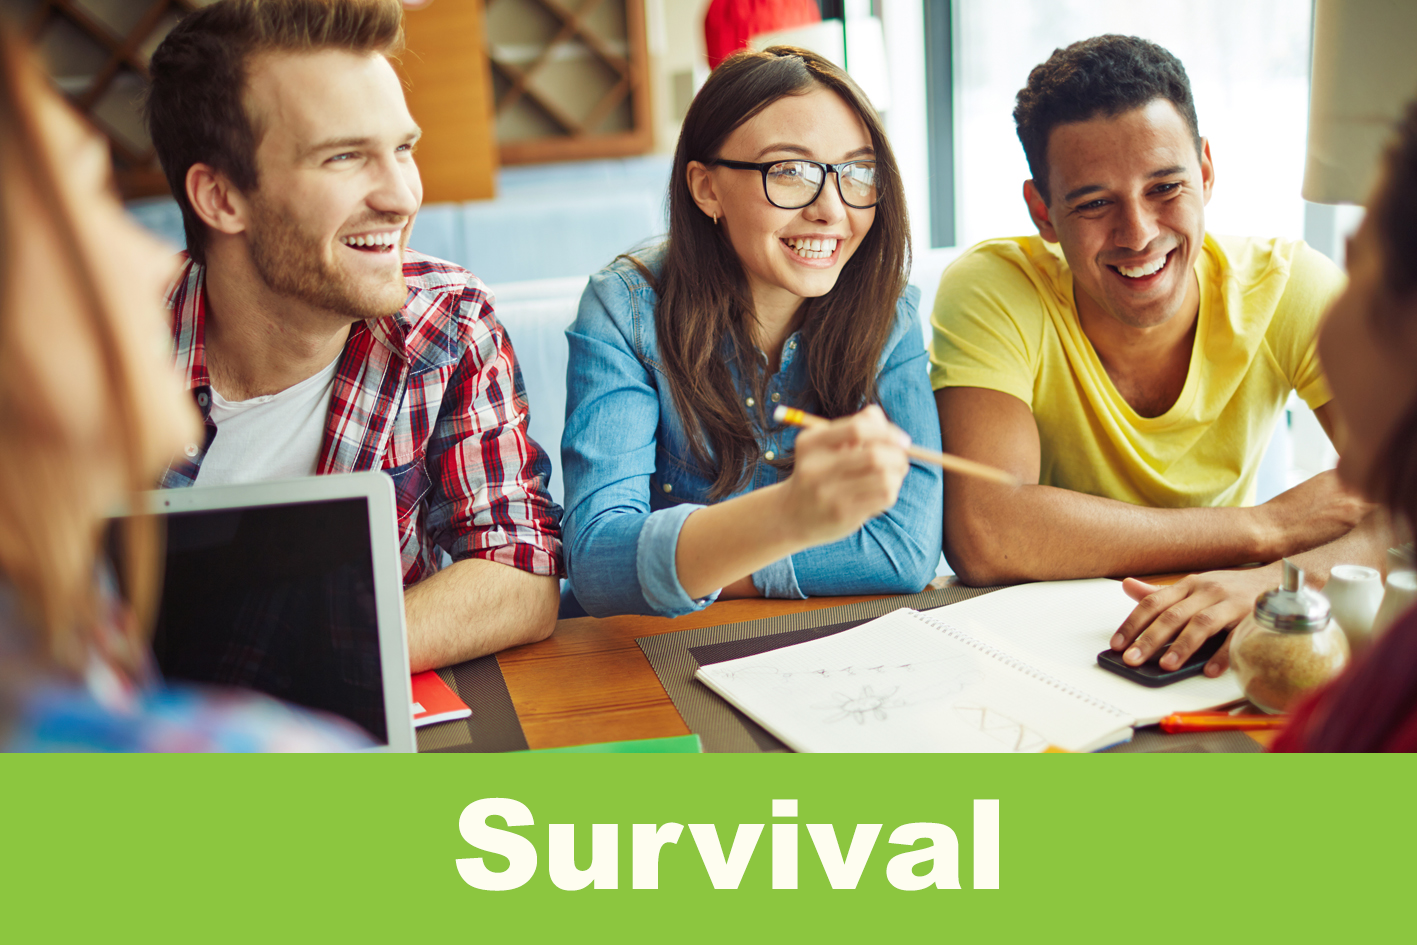 Survival One Week Intensive / 12 - 16 April 2021